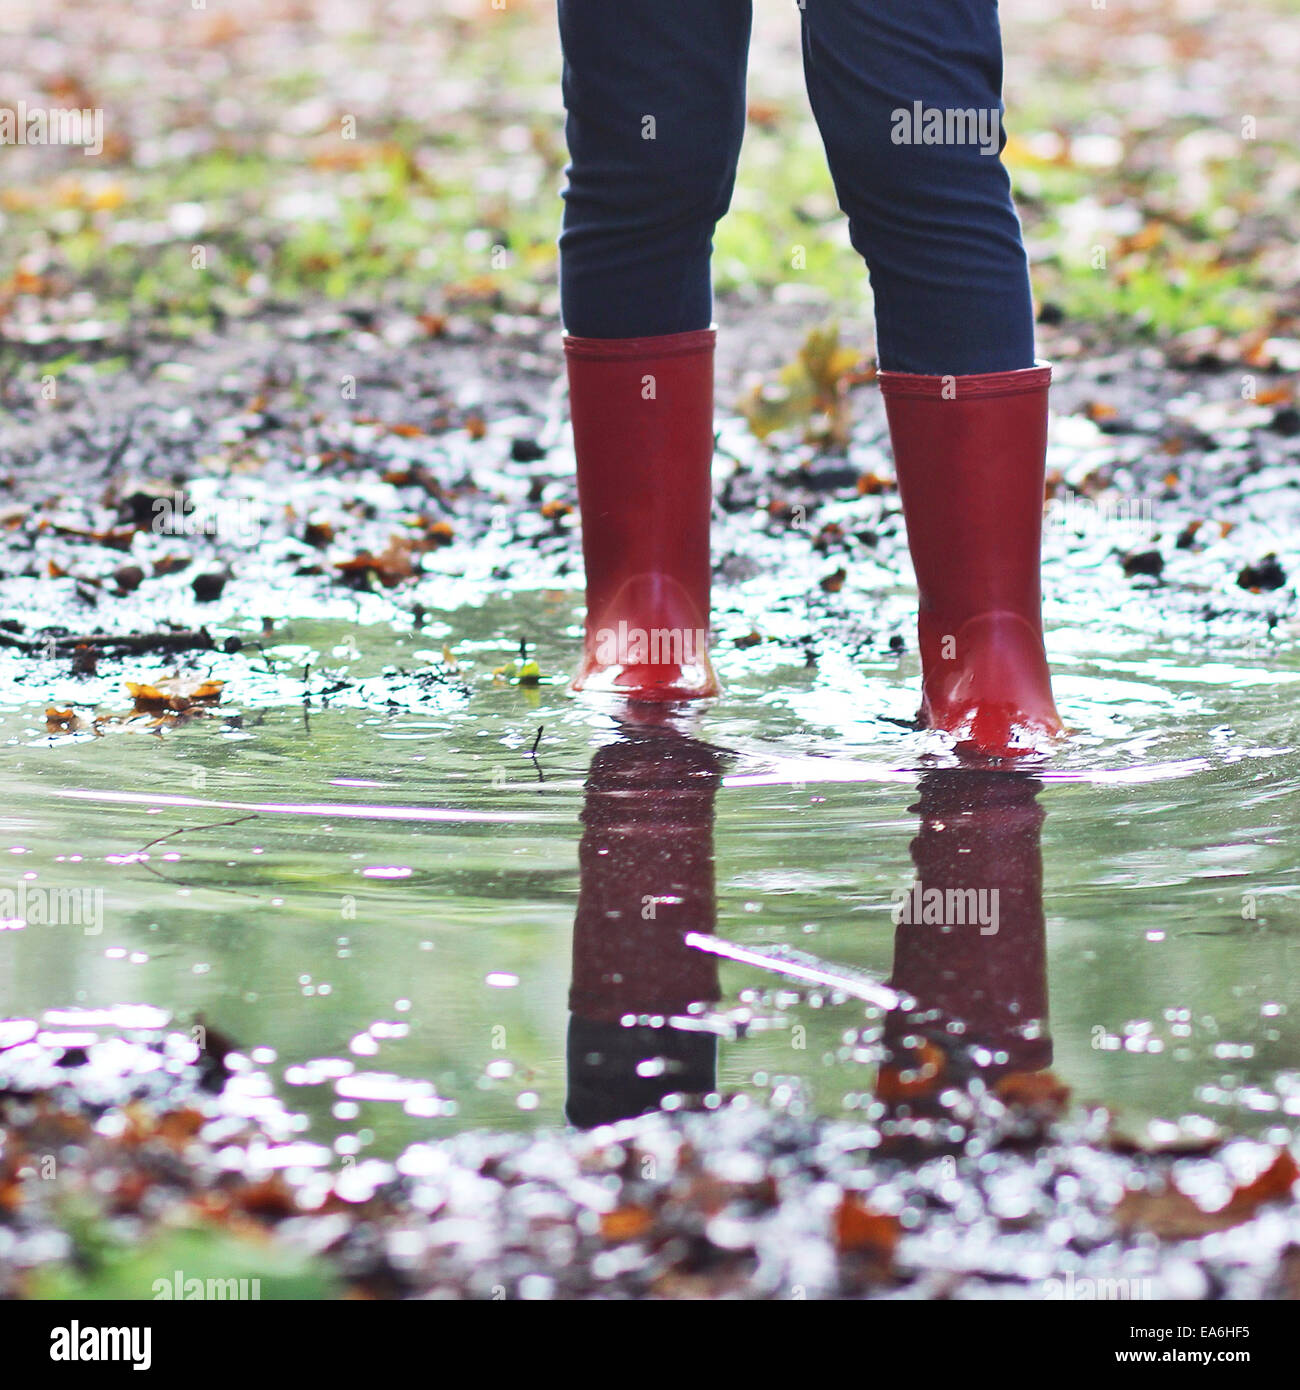 Girl wearing wellington boots standing in puddle - Stock Image